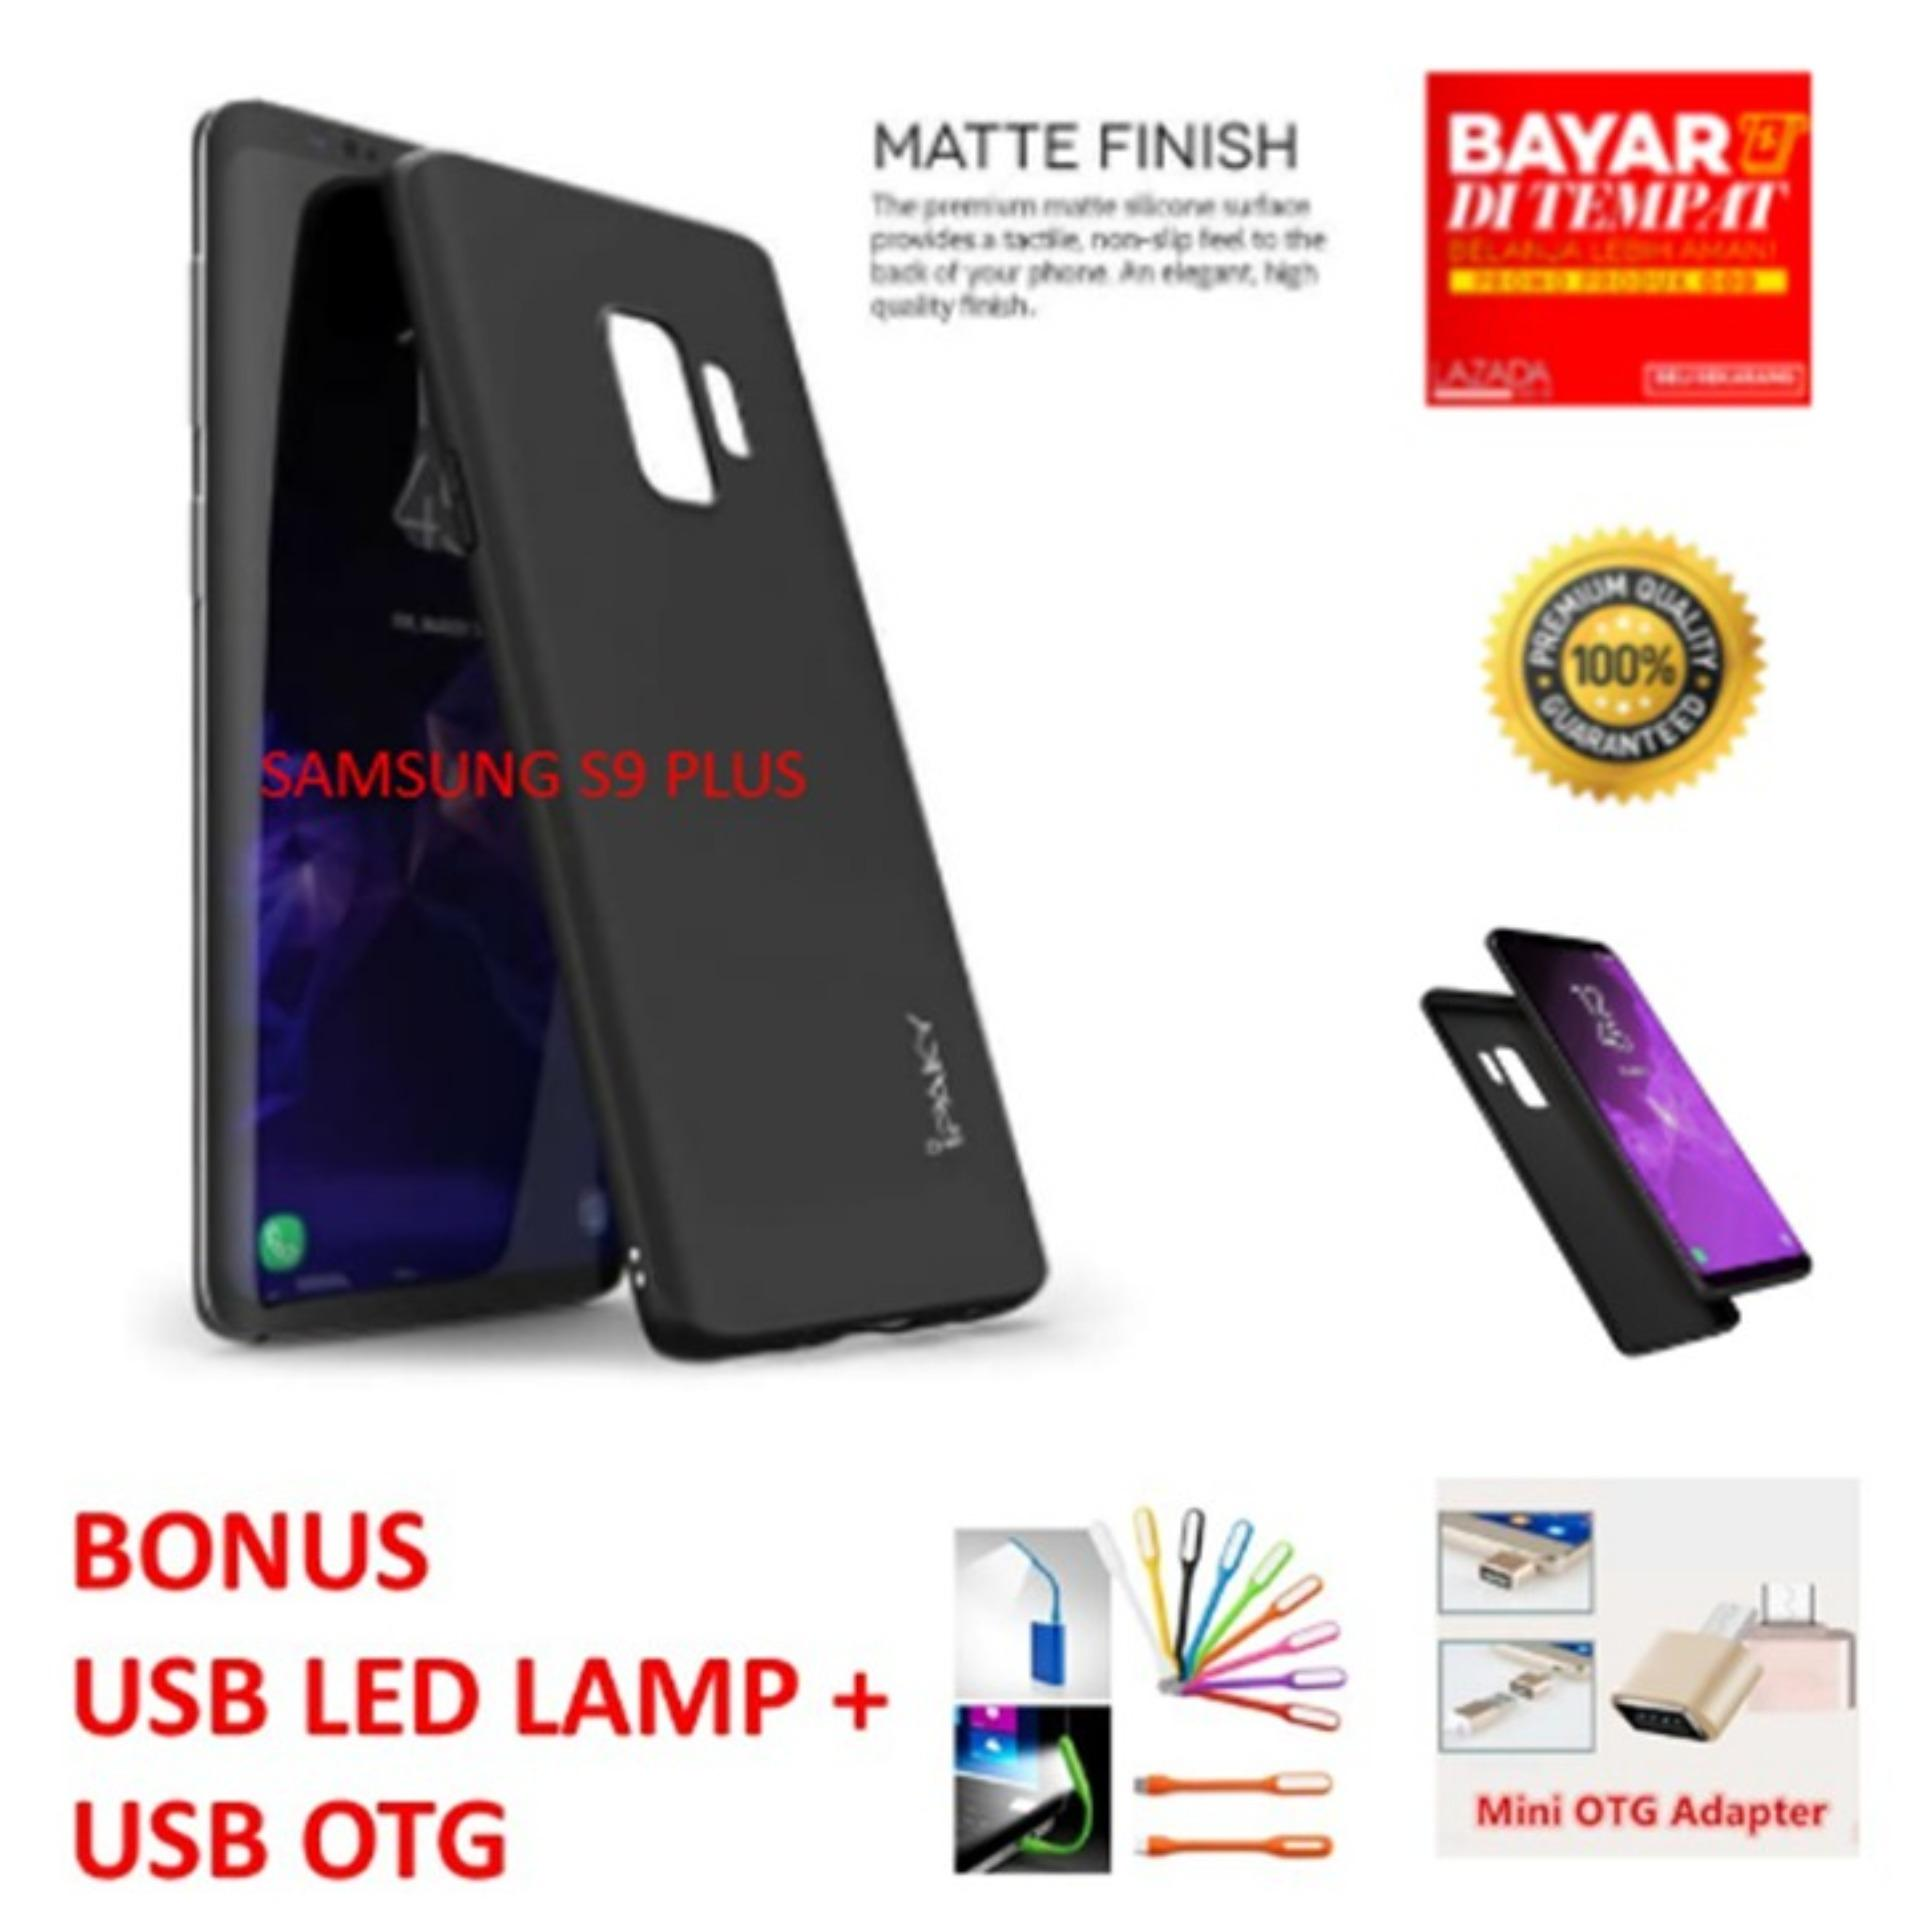 CASE HP SOFTCASE IPAKY SUPER SLIM MATTE ANTI FINGERPRINT HYBRID CASE FOR SAMSUNG GALAXY S9 PLUS